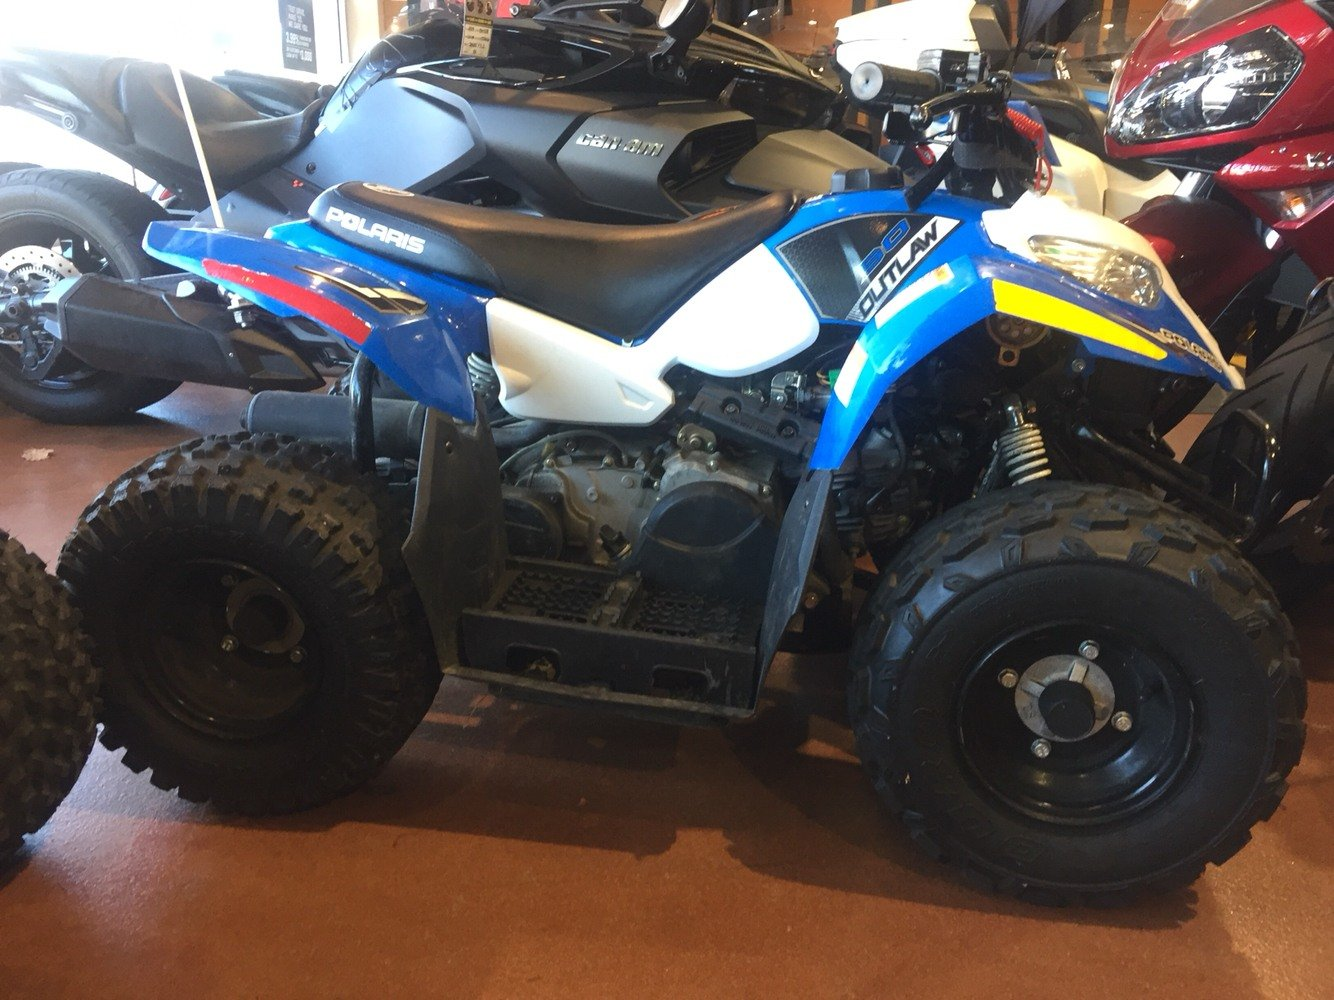 2014 Polaris Outlaw 50 for sale 2218